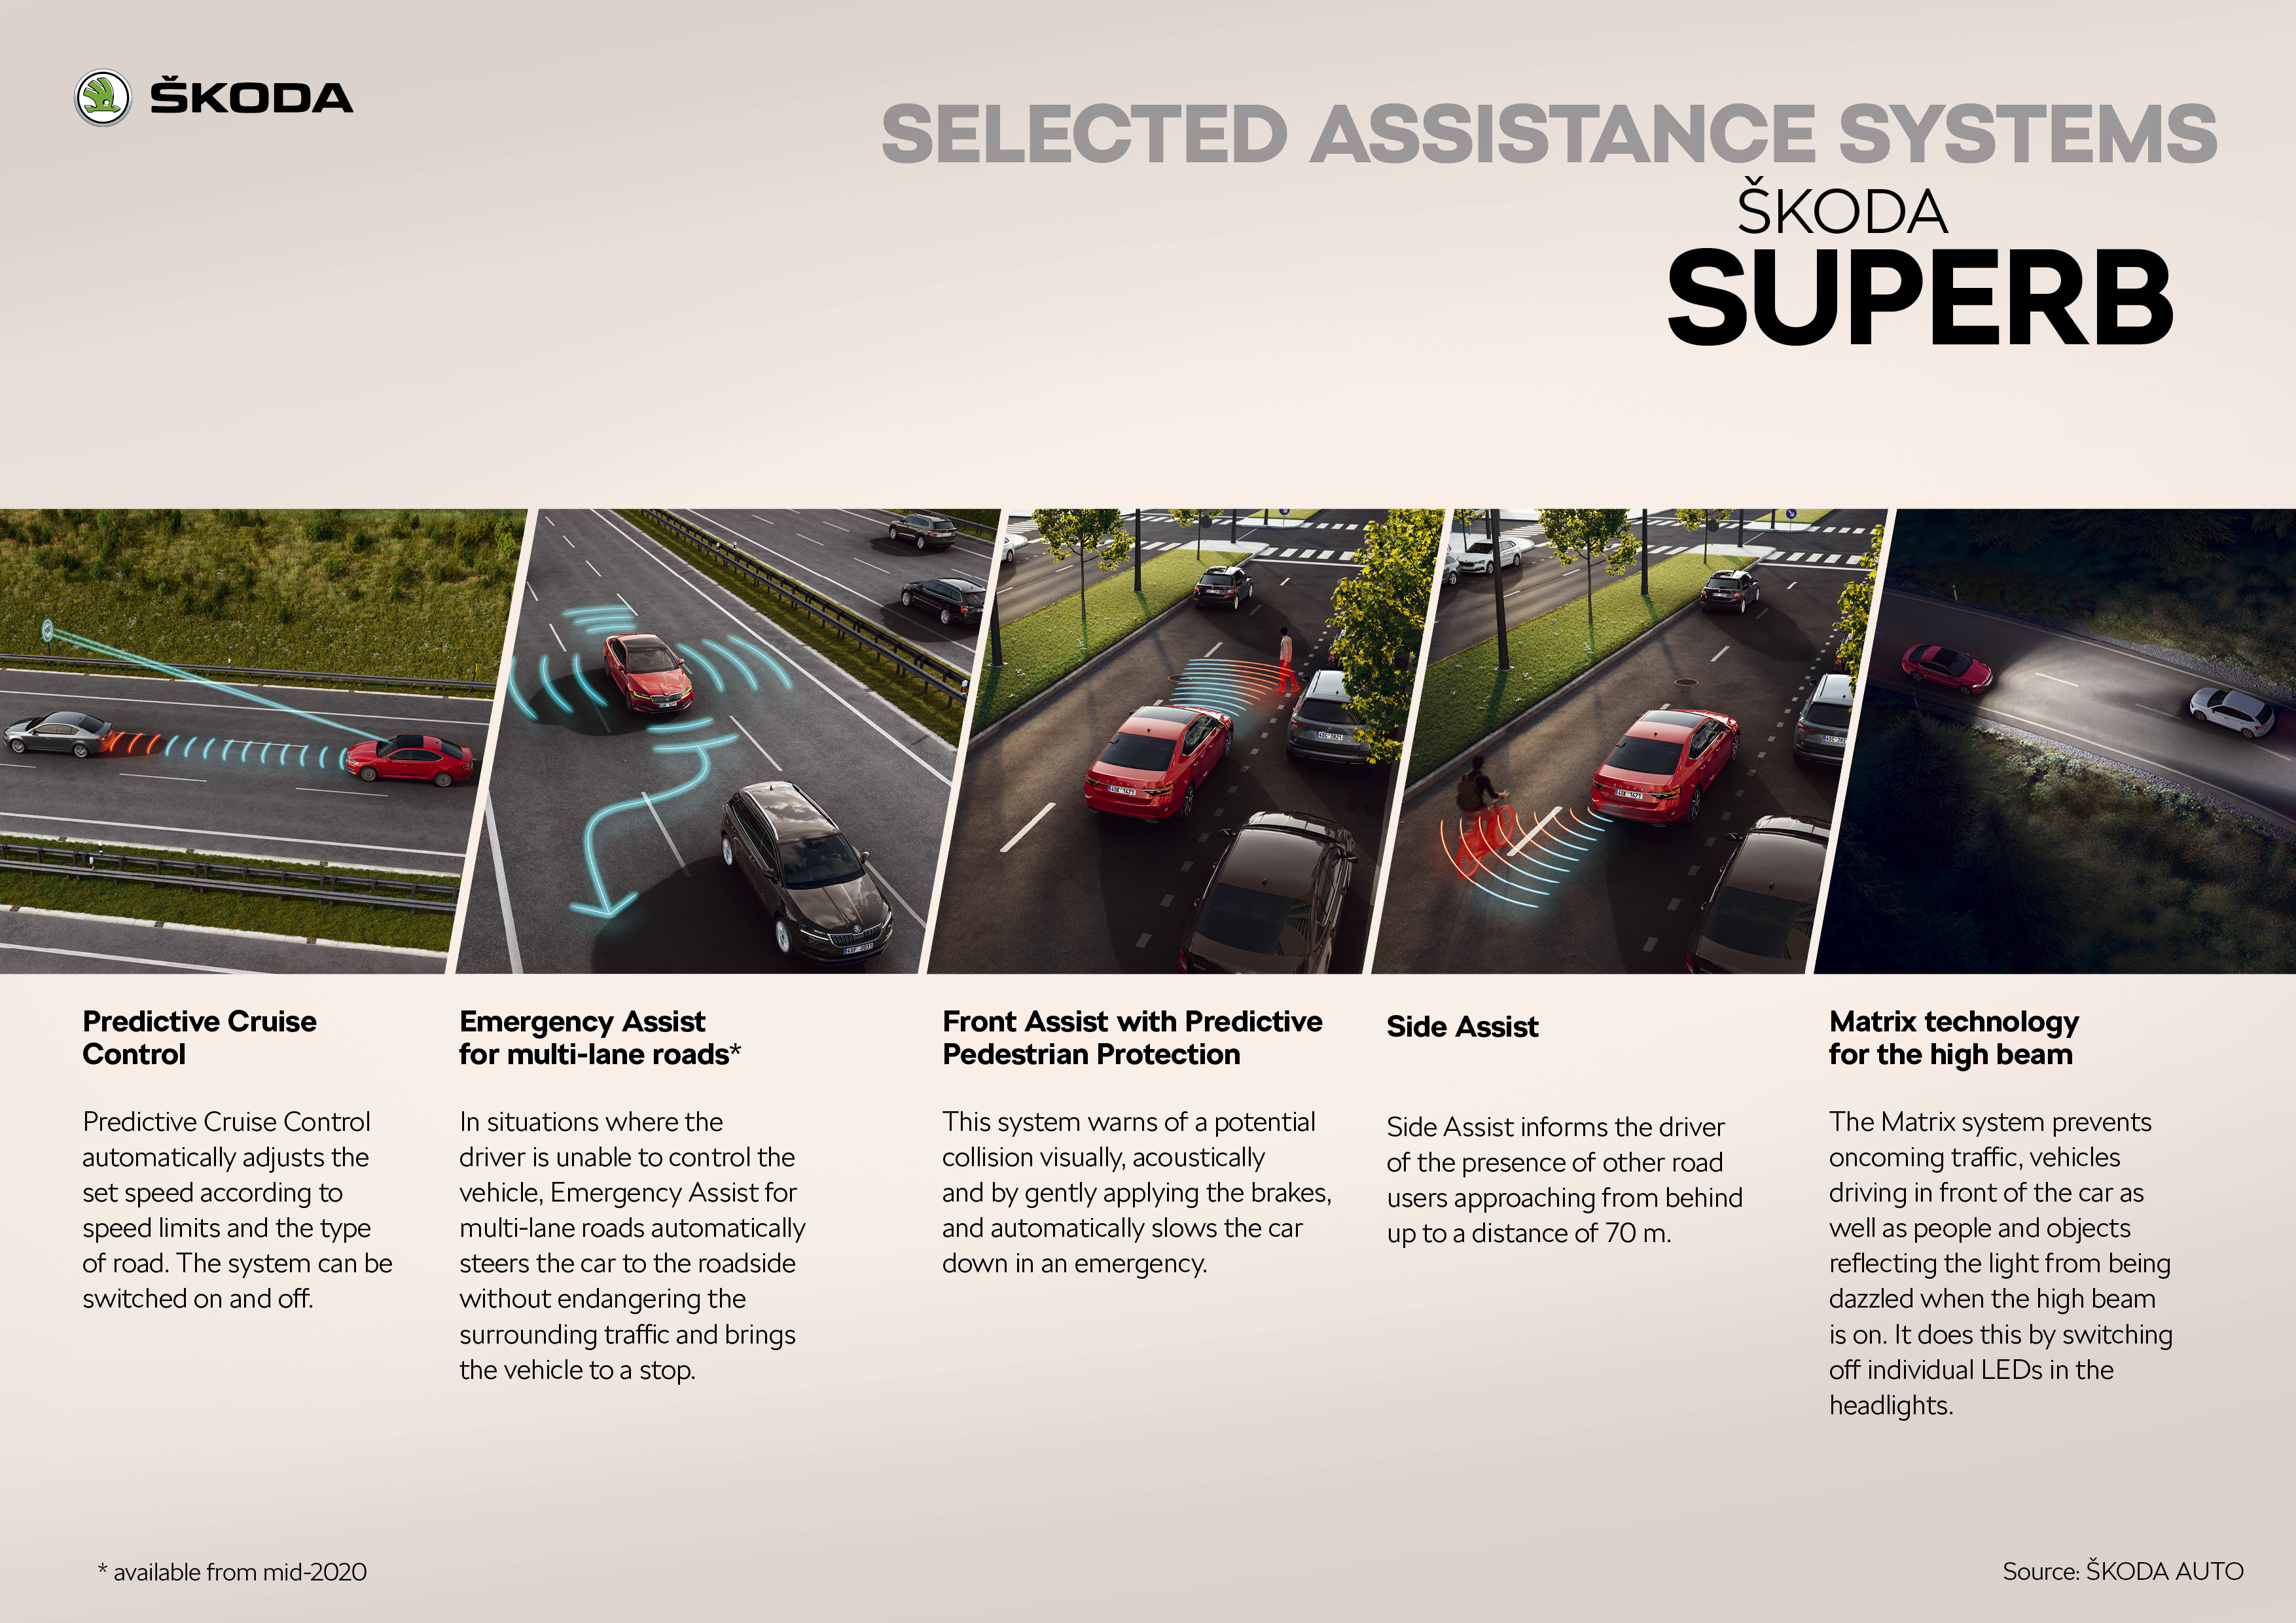 ŠKODA SUPERB Selected assistance systems